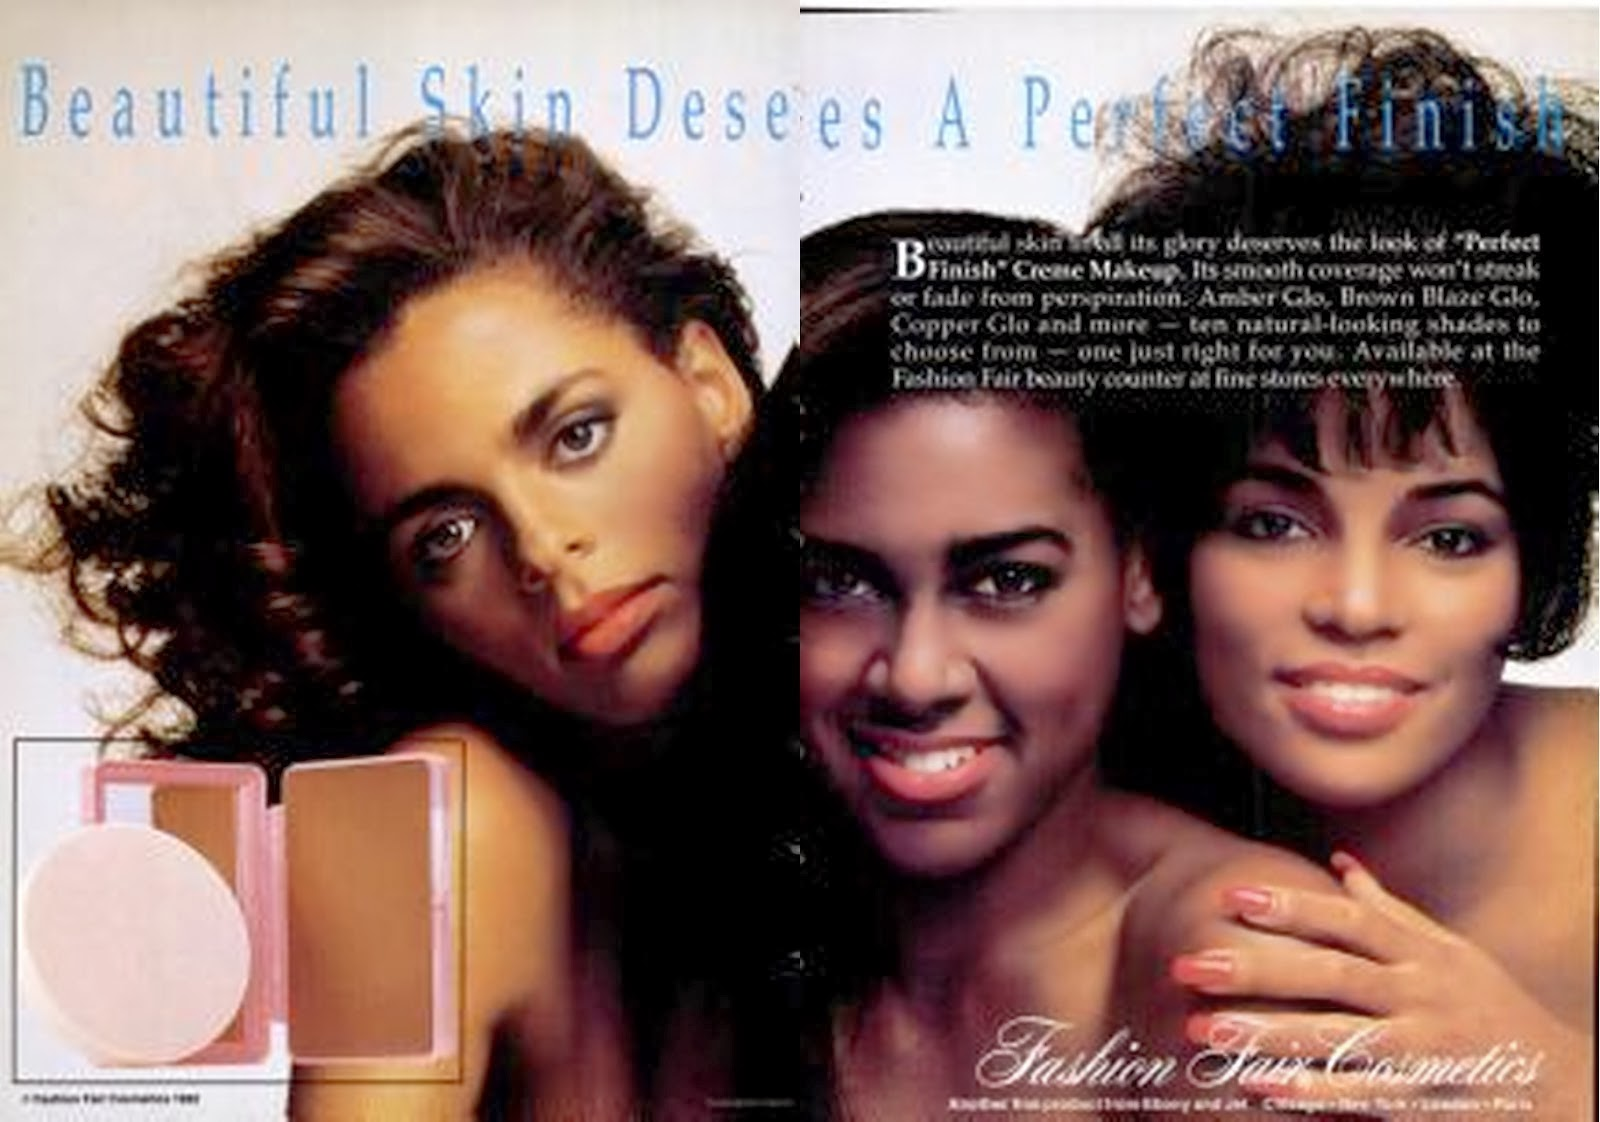 Fashion Fair Beauty Products: Black Ethnic Advertising / Magazine Covers: Advertising